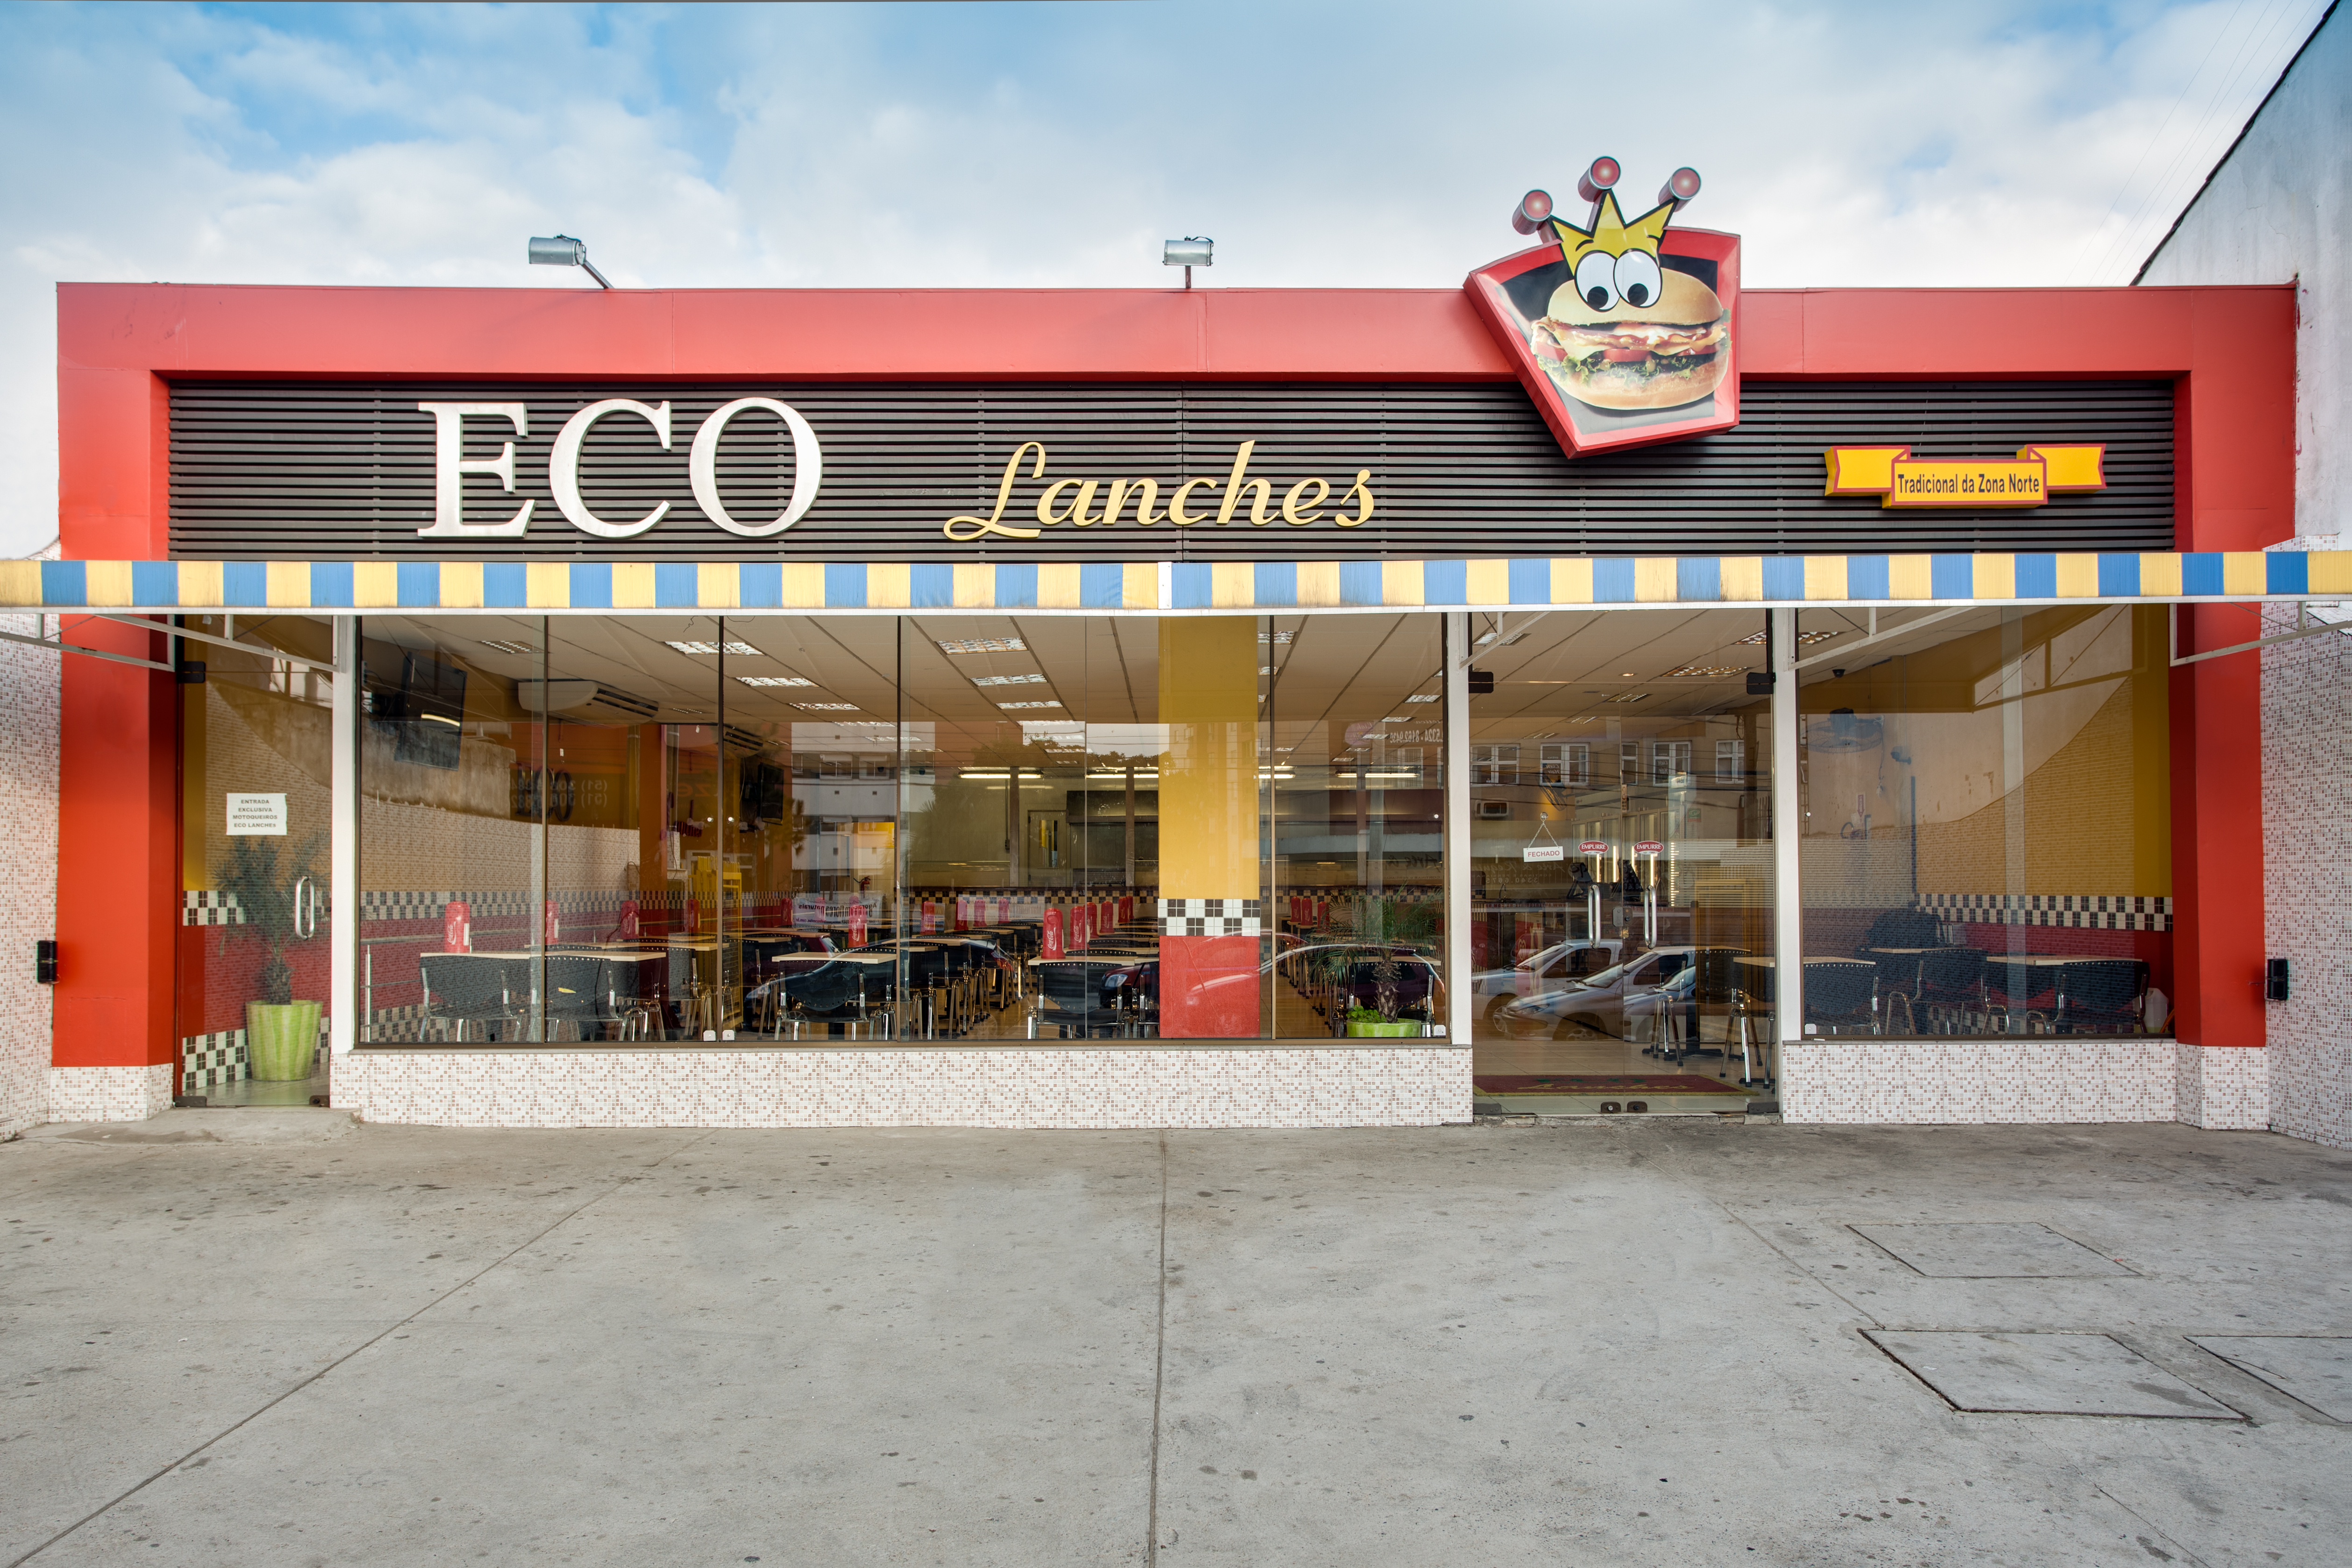 ECO lanches